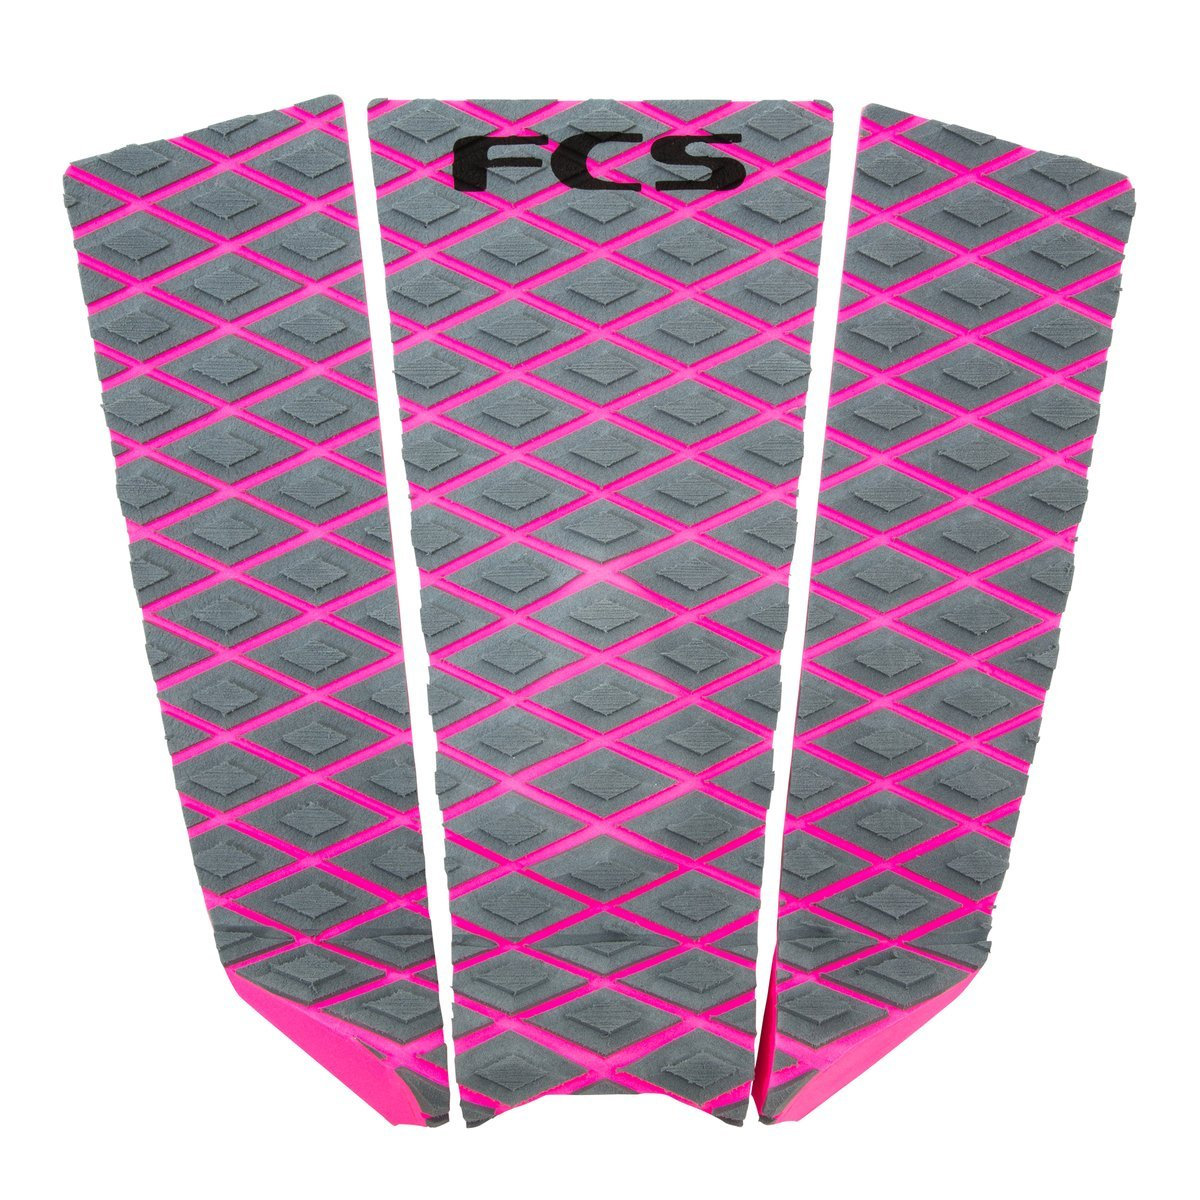 SALLY FITZGIBBONS TAIL PAD